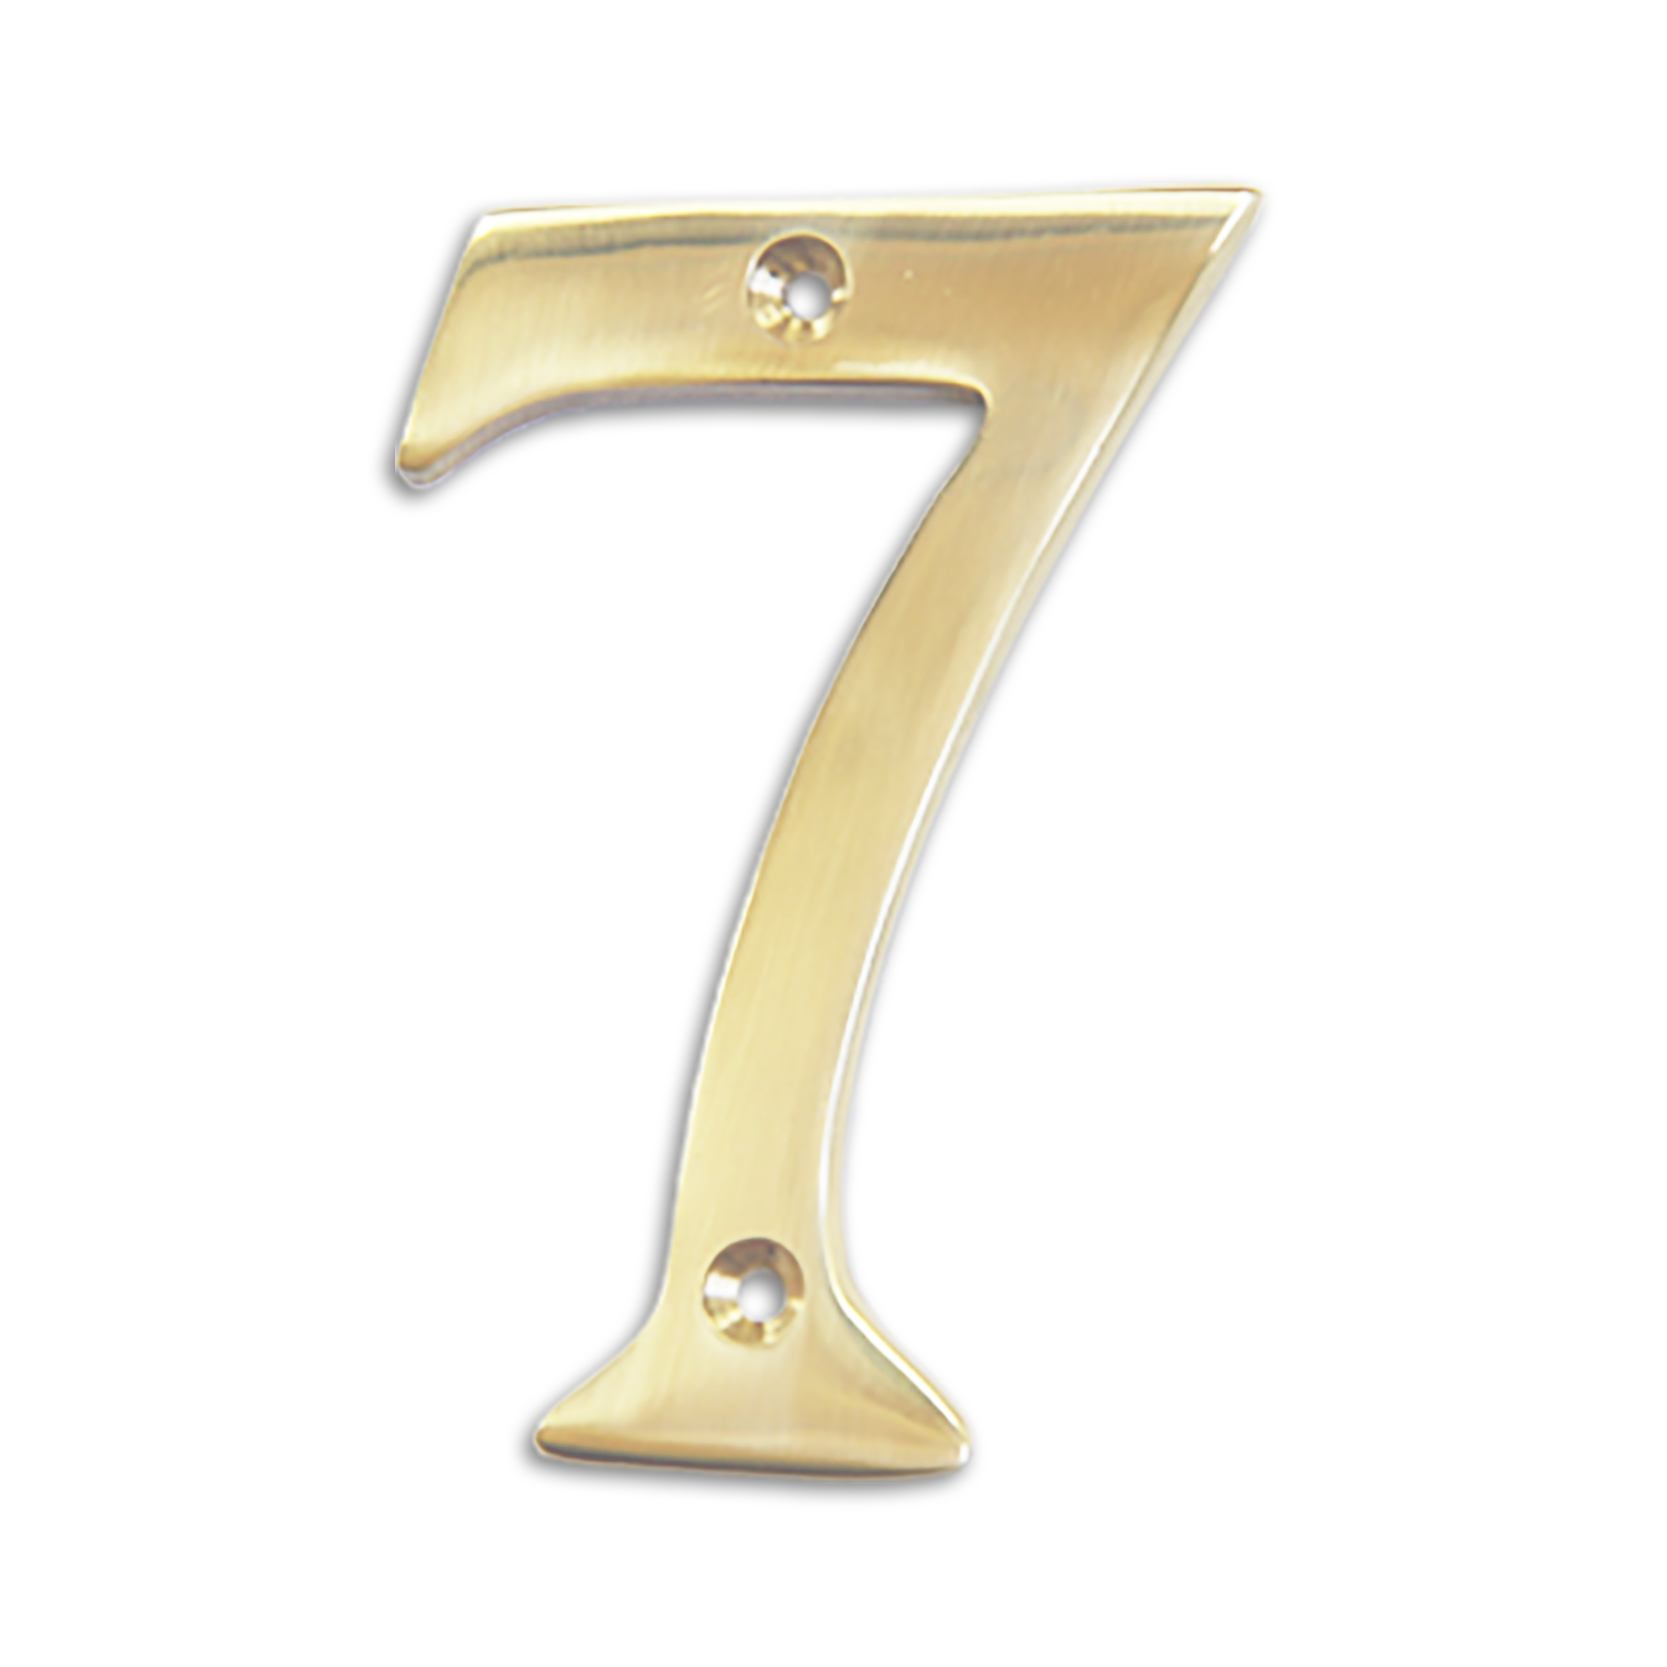 4-inch brass metal house number in polished brass finish - metal number 7